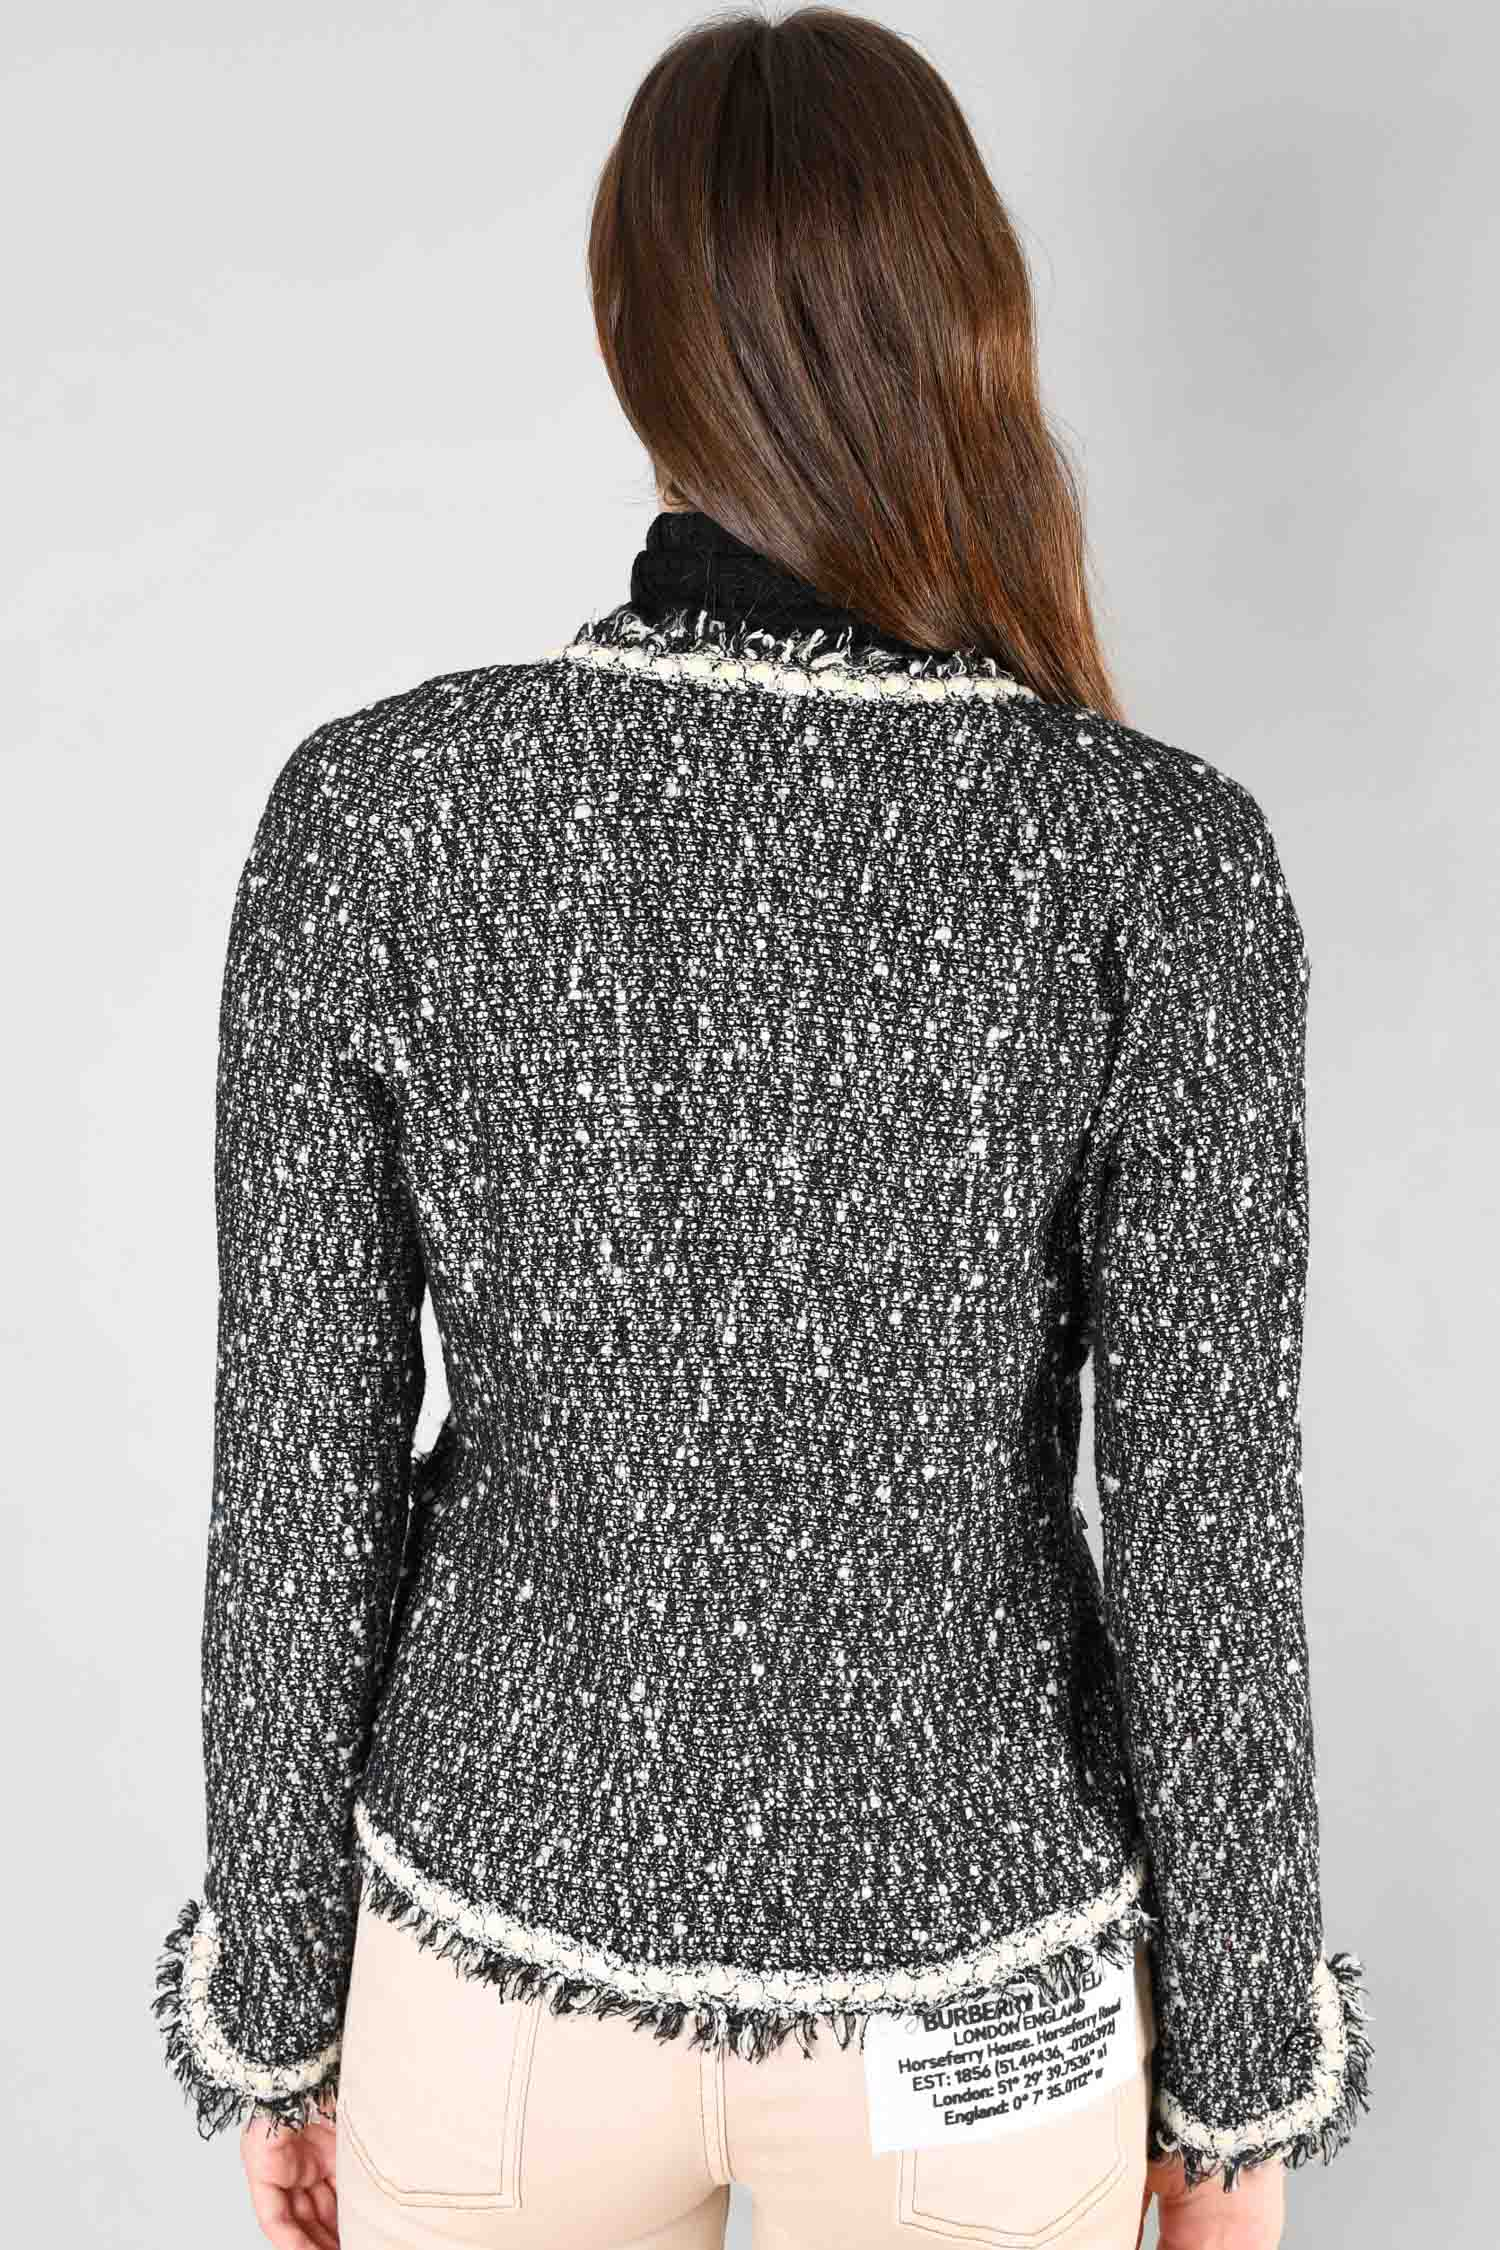 Chanel Black/Cream Tweed Fringe Blazer Size 42